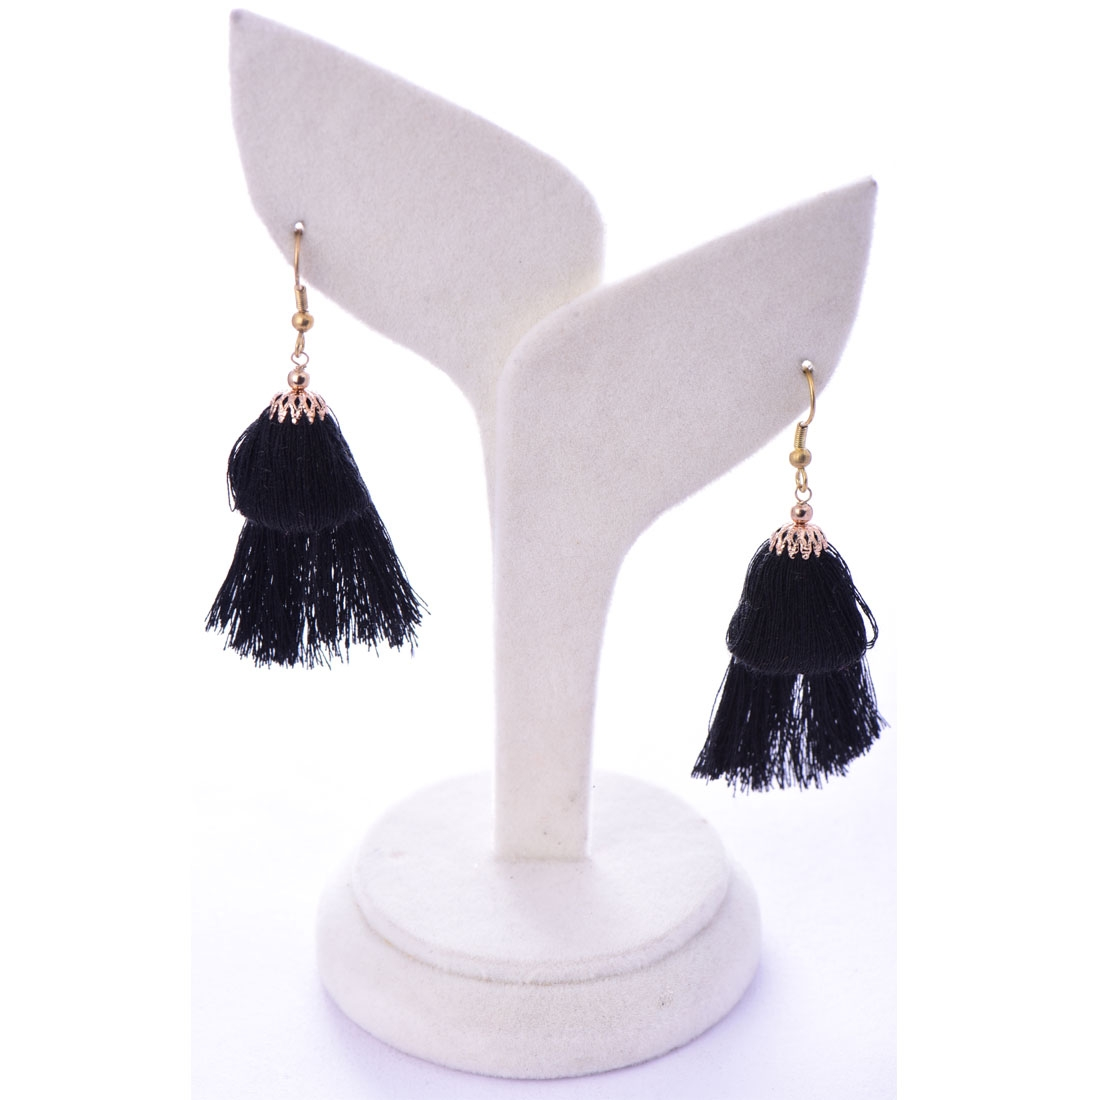 Beads India Anthracide 1404487 Earrings